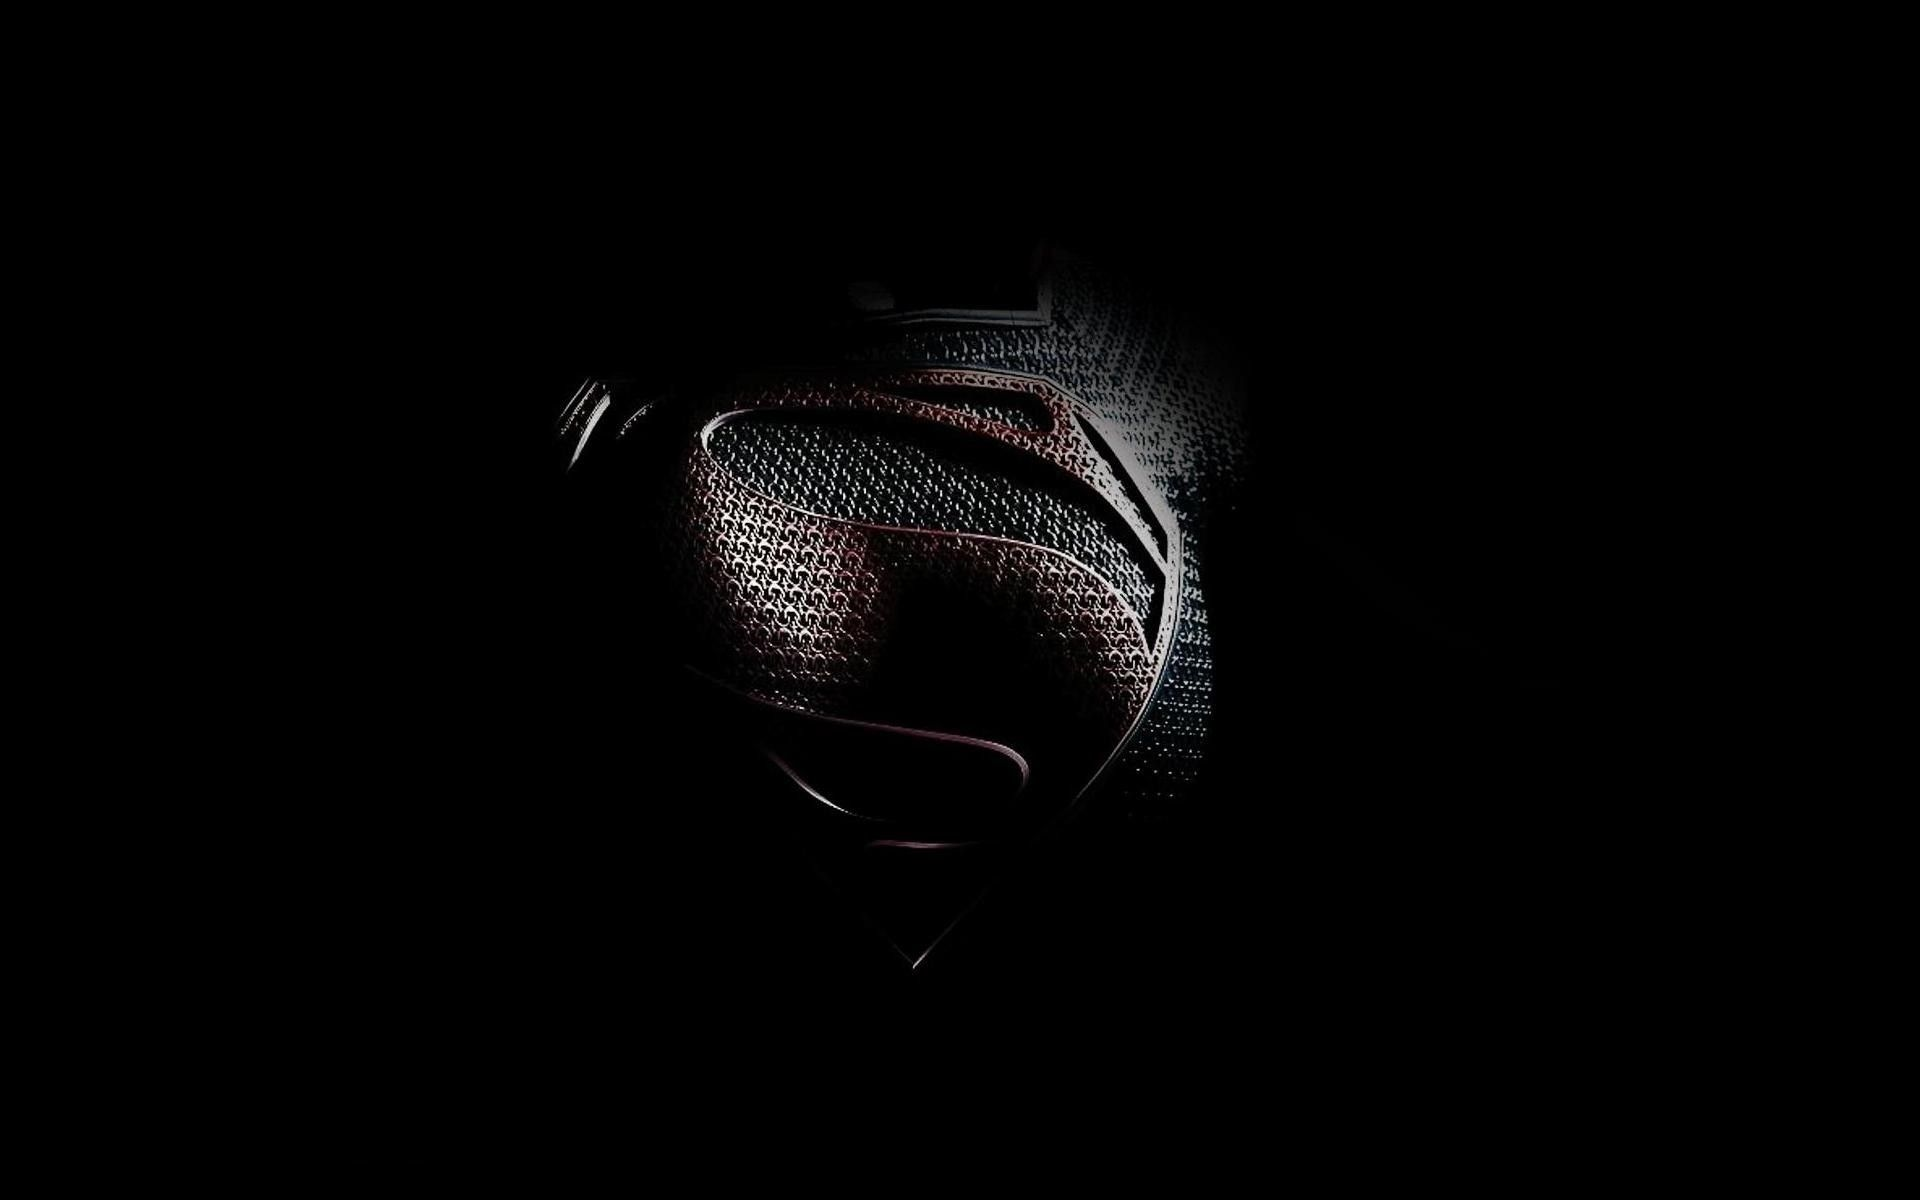 1080p Black Collection See All Wallpapers Wallpapers Background Other In 2020 Dark Black Wallpaper Superman Wallpaper Black Wallpaper